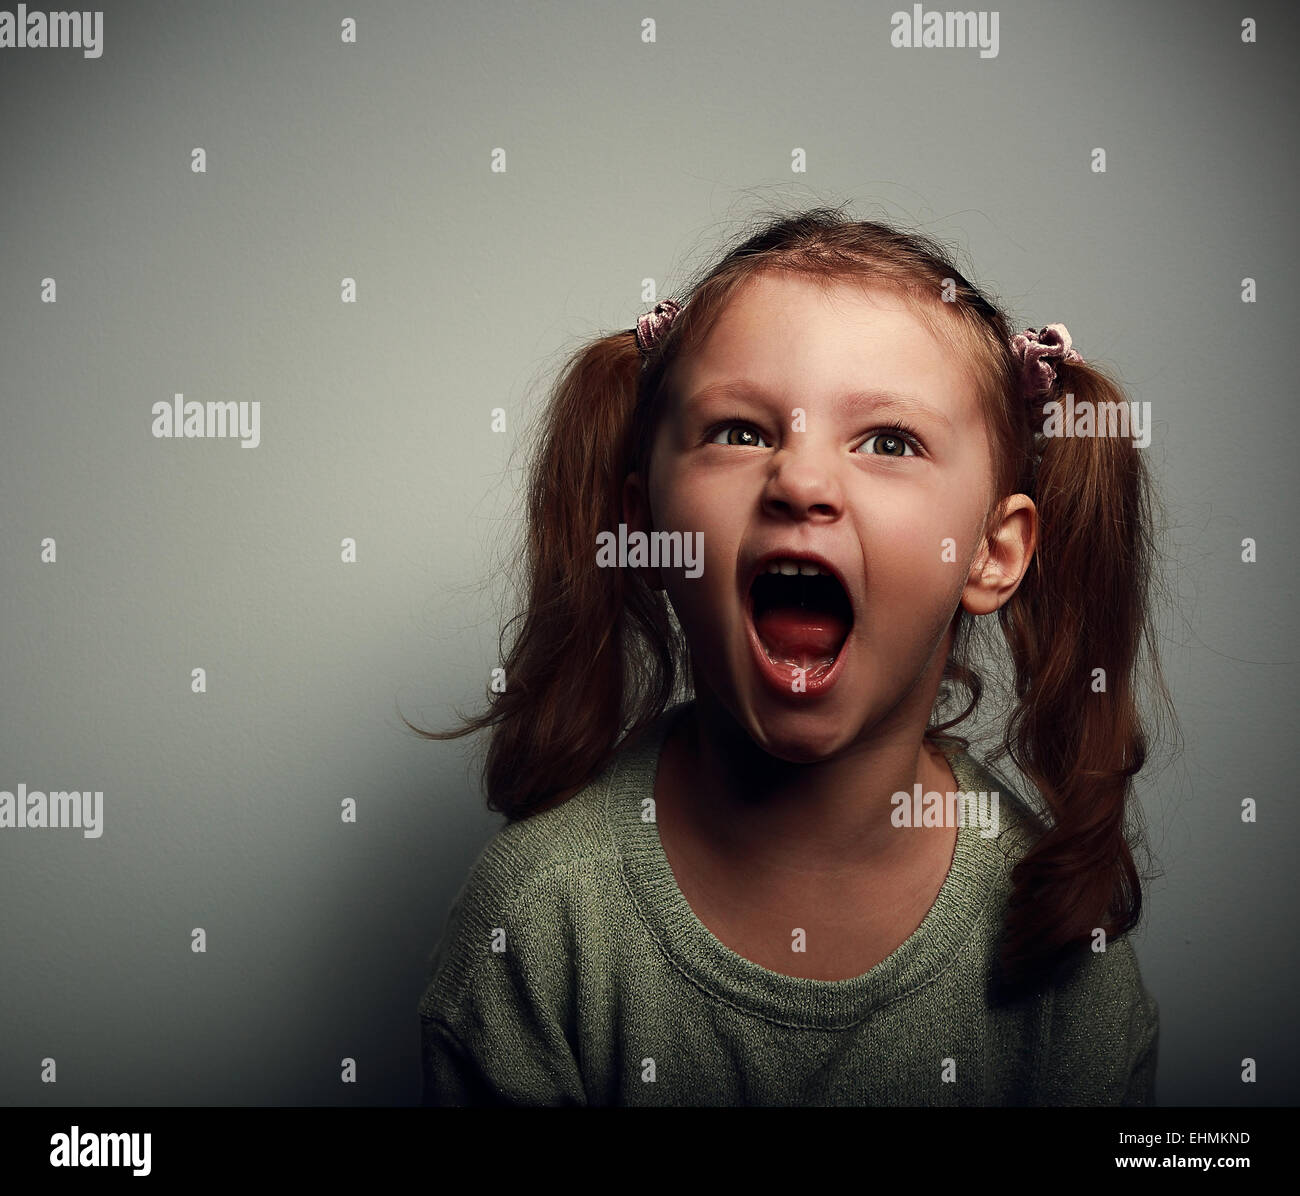 Shouting angry kid girl with open mouth and negative look on dark background - Stock Image